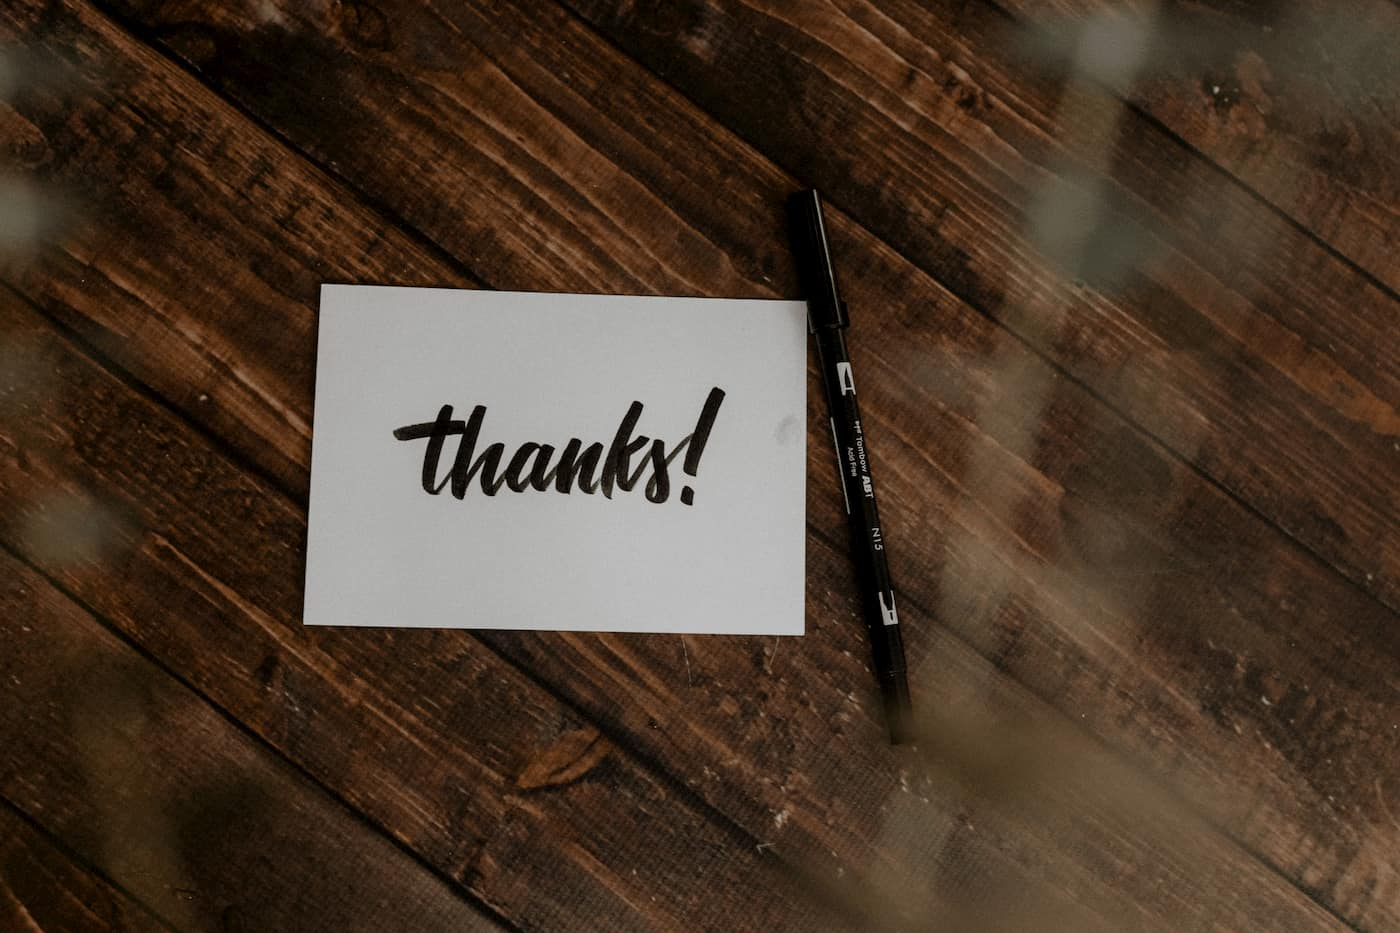 Caring for residents with a thank you card